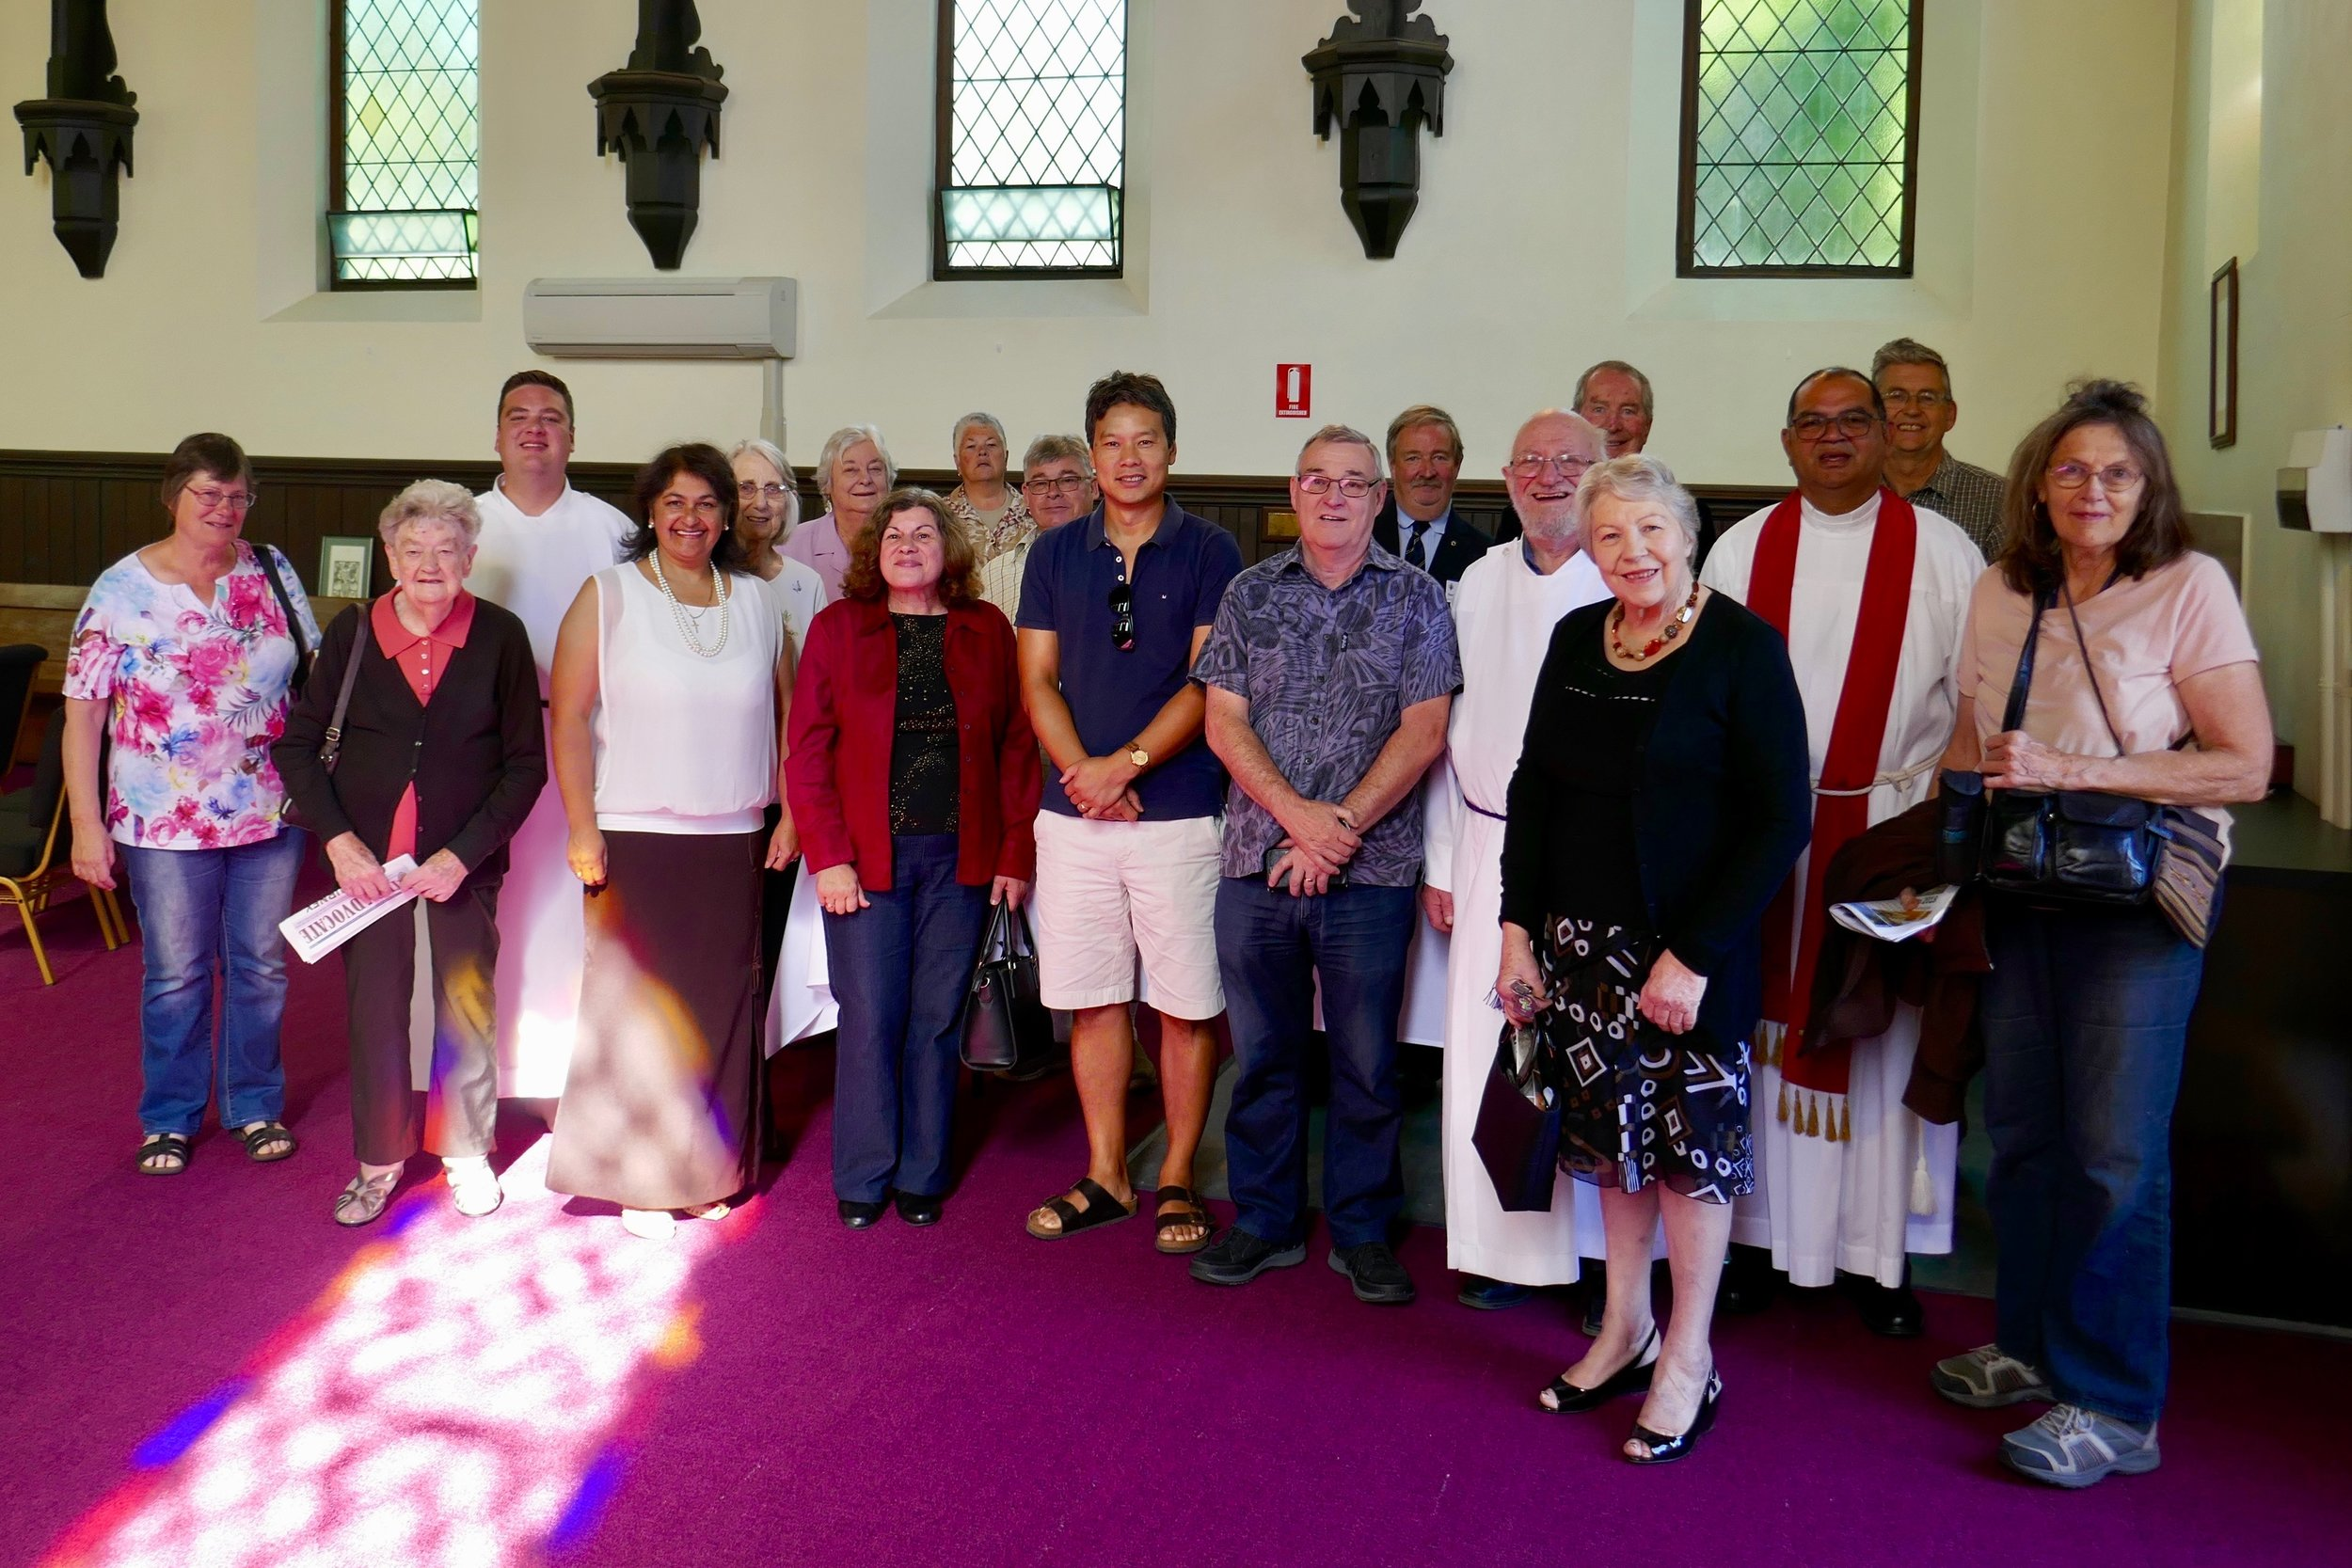 Members from the Melbourne Focolare group with Fr André and parishioners at Christ Church